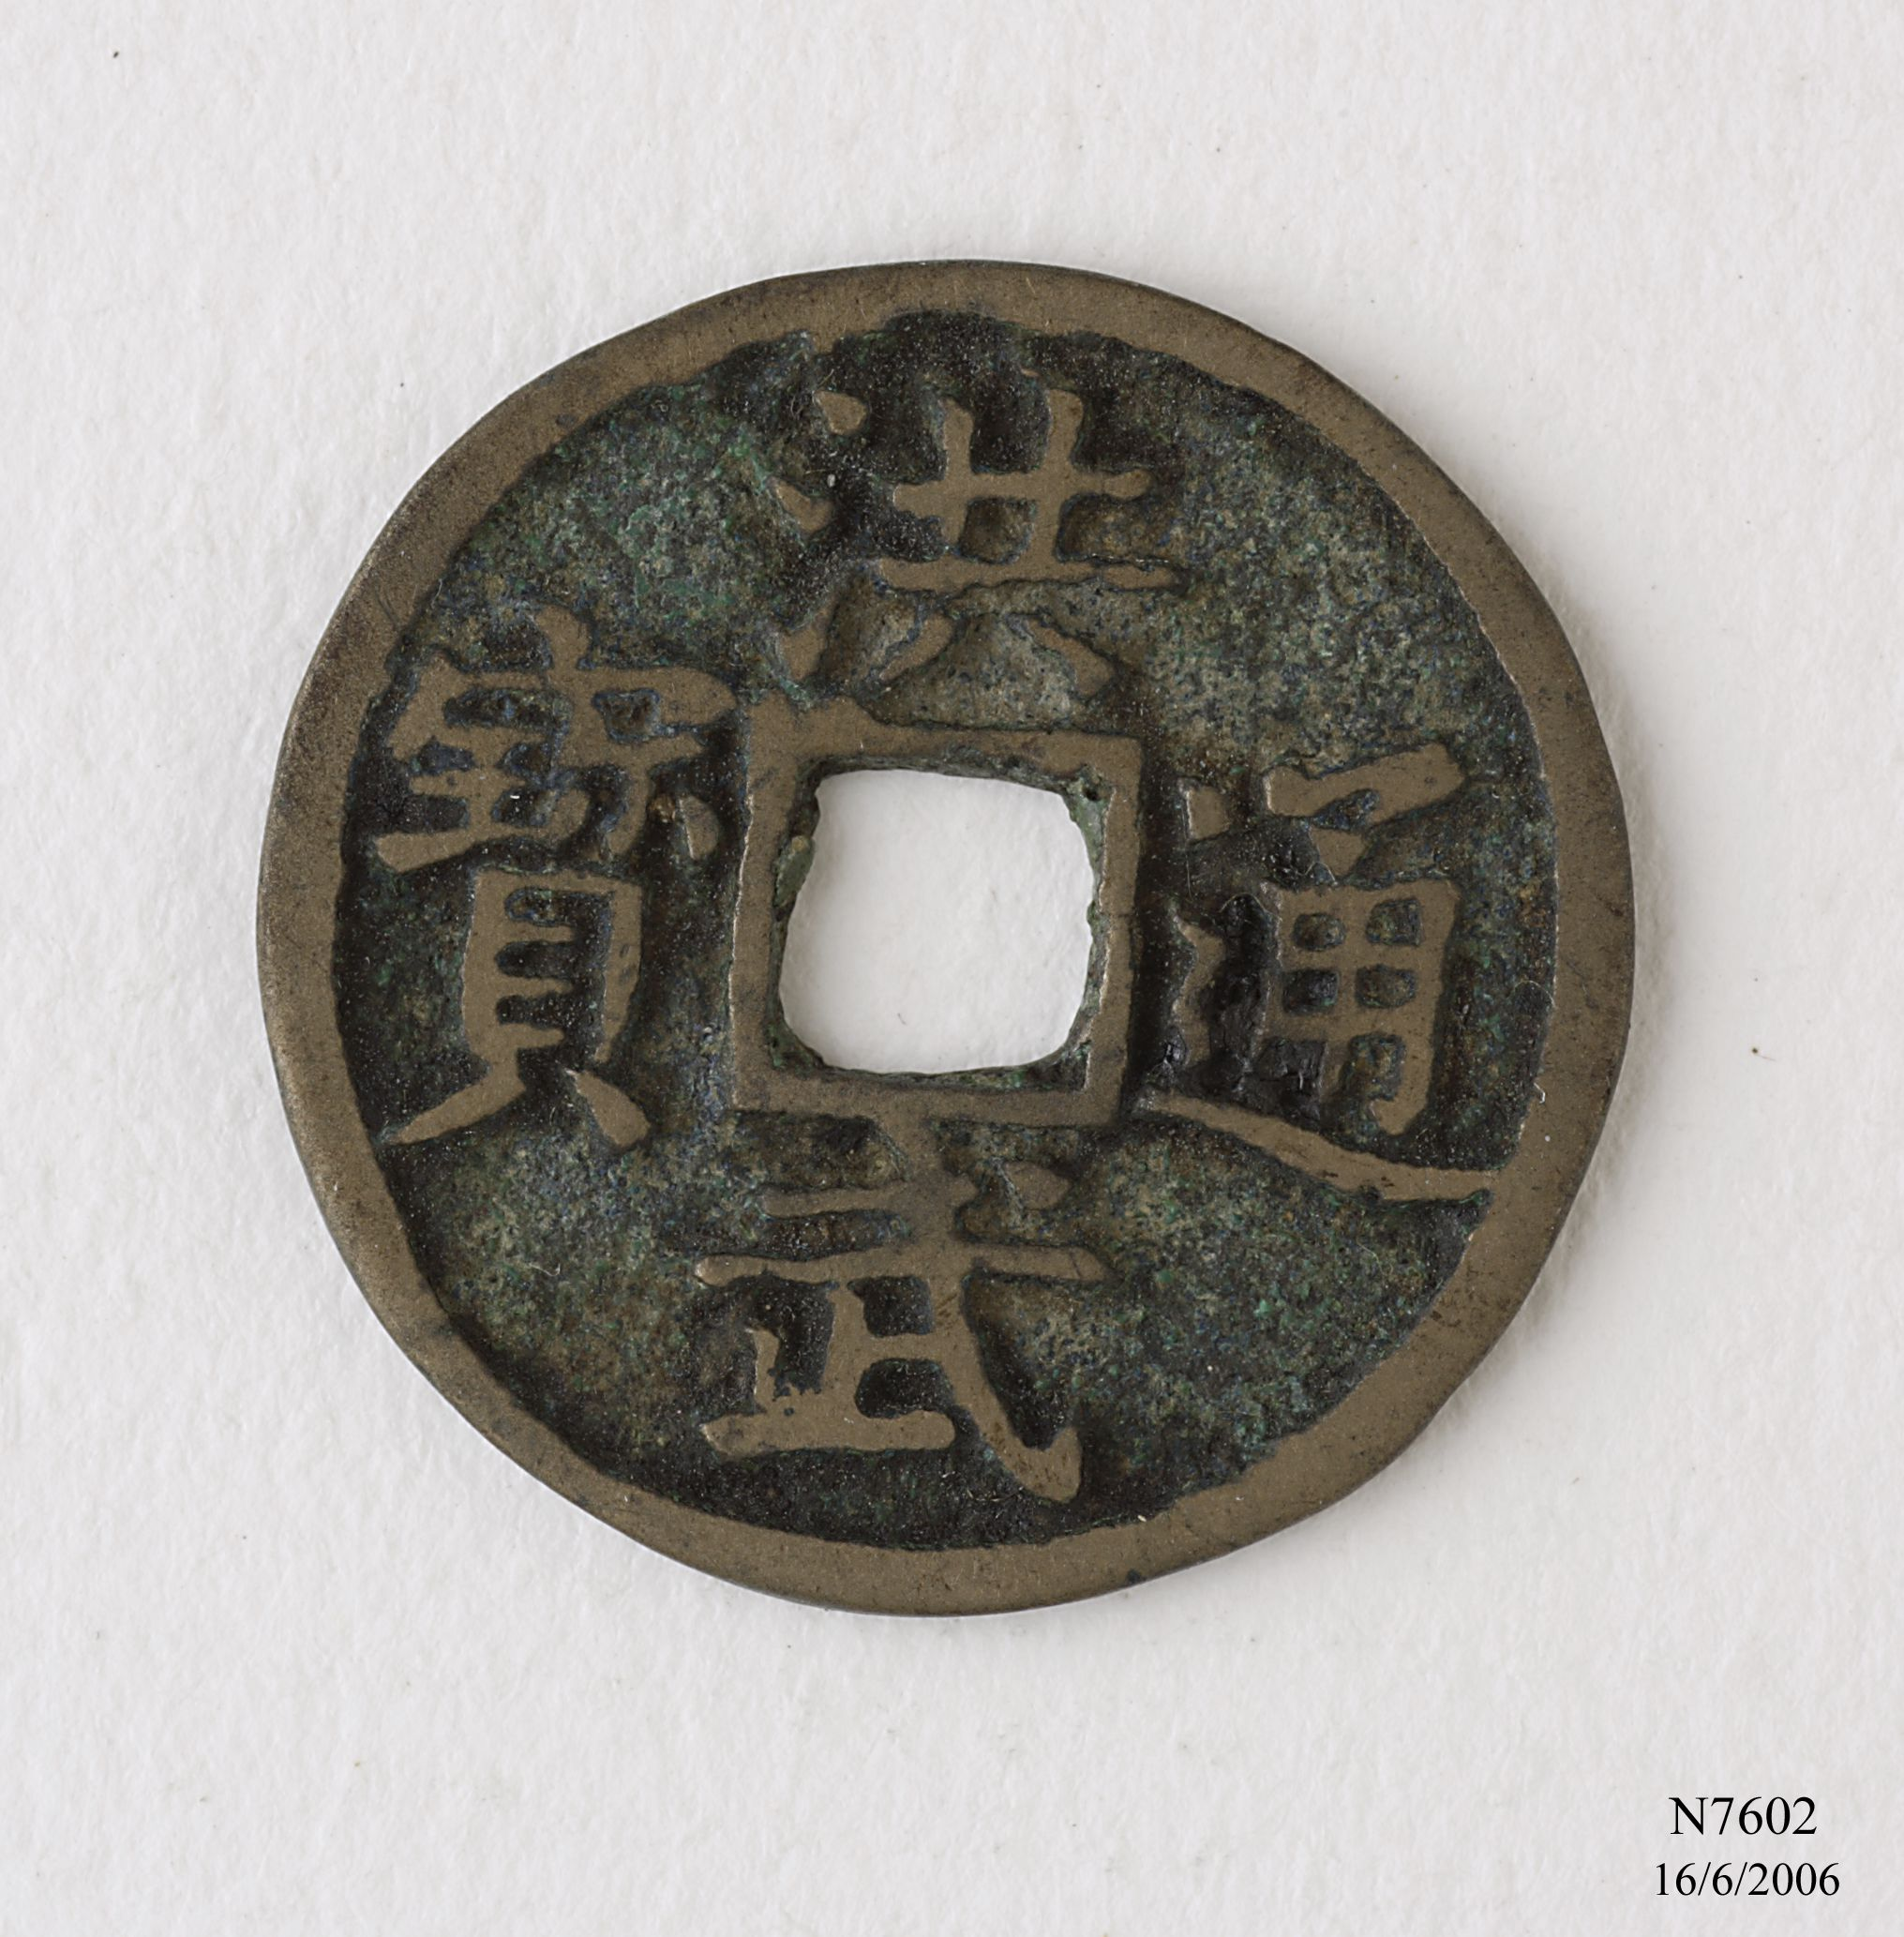 3e5fdfea6 Coin from reign of Emperor T'ai Tsu, Ming Dynasty, China - MAAS Collection